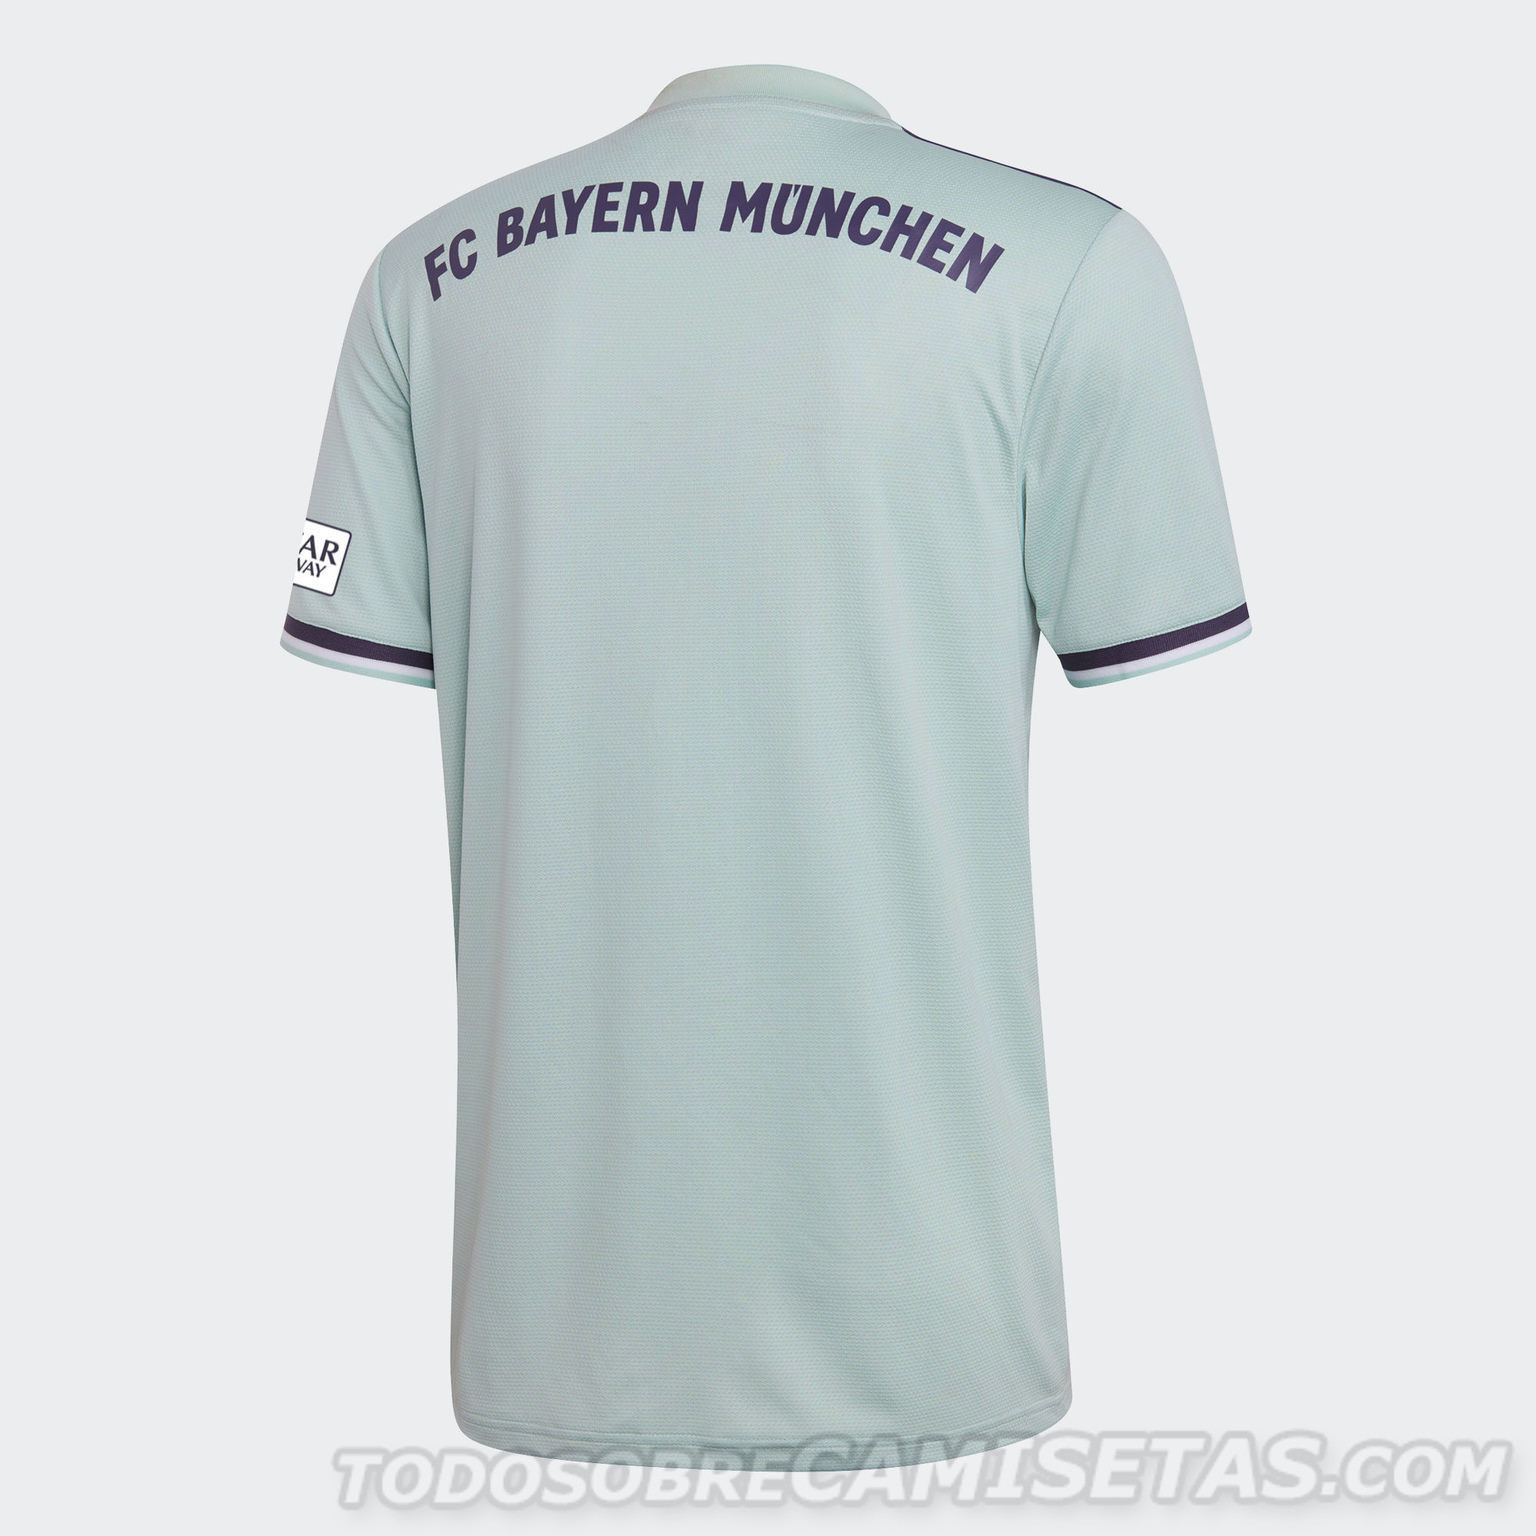 Bayern-Munich-2018-19-adidas-new-away-kit-4.jpg